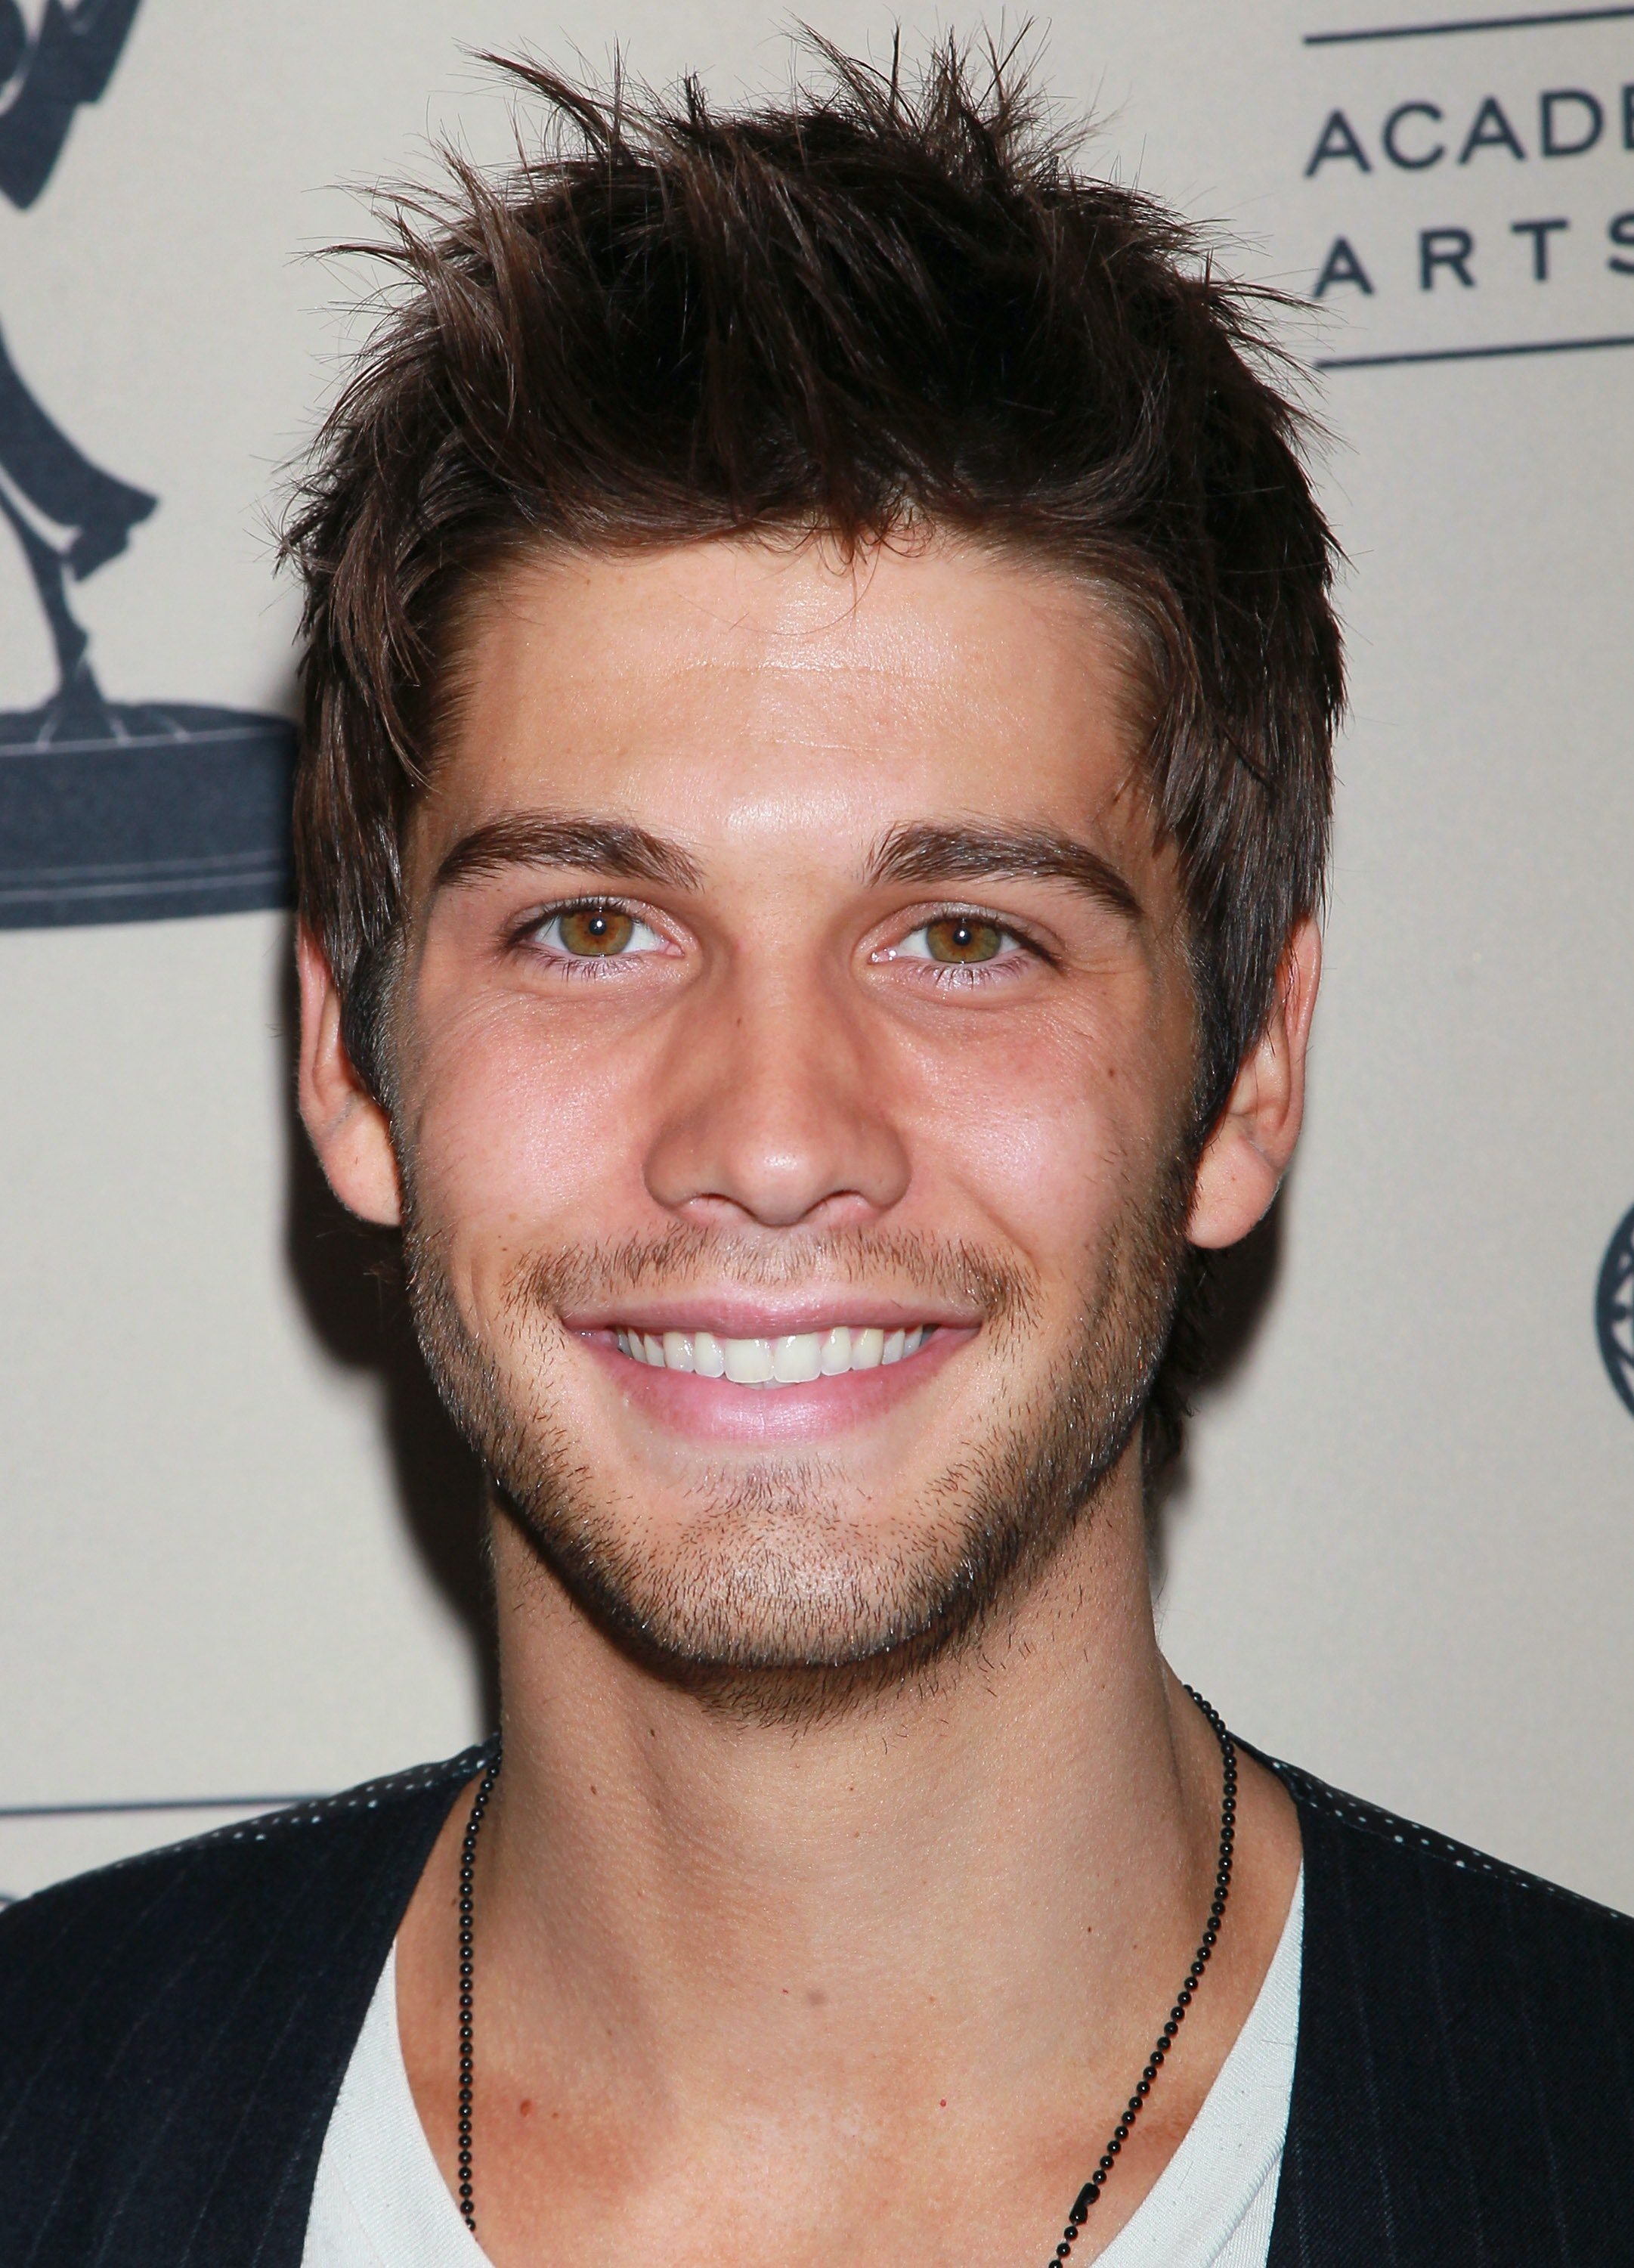 casey jon deidrick wikipediacasey jon deidrick instagram, casey jon deidrick, casey jon deidrick on glee, casey jon deidrick twitter, casey jon deidrick wikipedia, casey jon deidrick eye candy, casey jon deidrick movies, casey jon deidrick and molly burnett, casey jon deidrick and victoria justice, casey jon deidrick dating, casey jon deidrick girlfriend 2015, casey jon deidrick band, casey jon deidrick 2015, casey jon deidrick wizards of waverly place, casey jon deidrick tumblr, casey jon deidrick shirtless, casey jon deidrick filme, casey jon deidrick singing, casey jon deidrick age, casey jon deidrick facebook